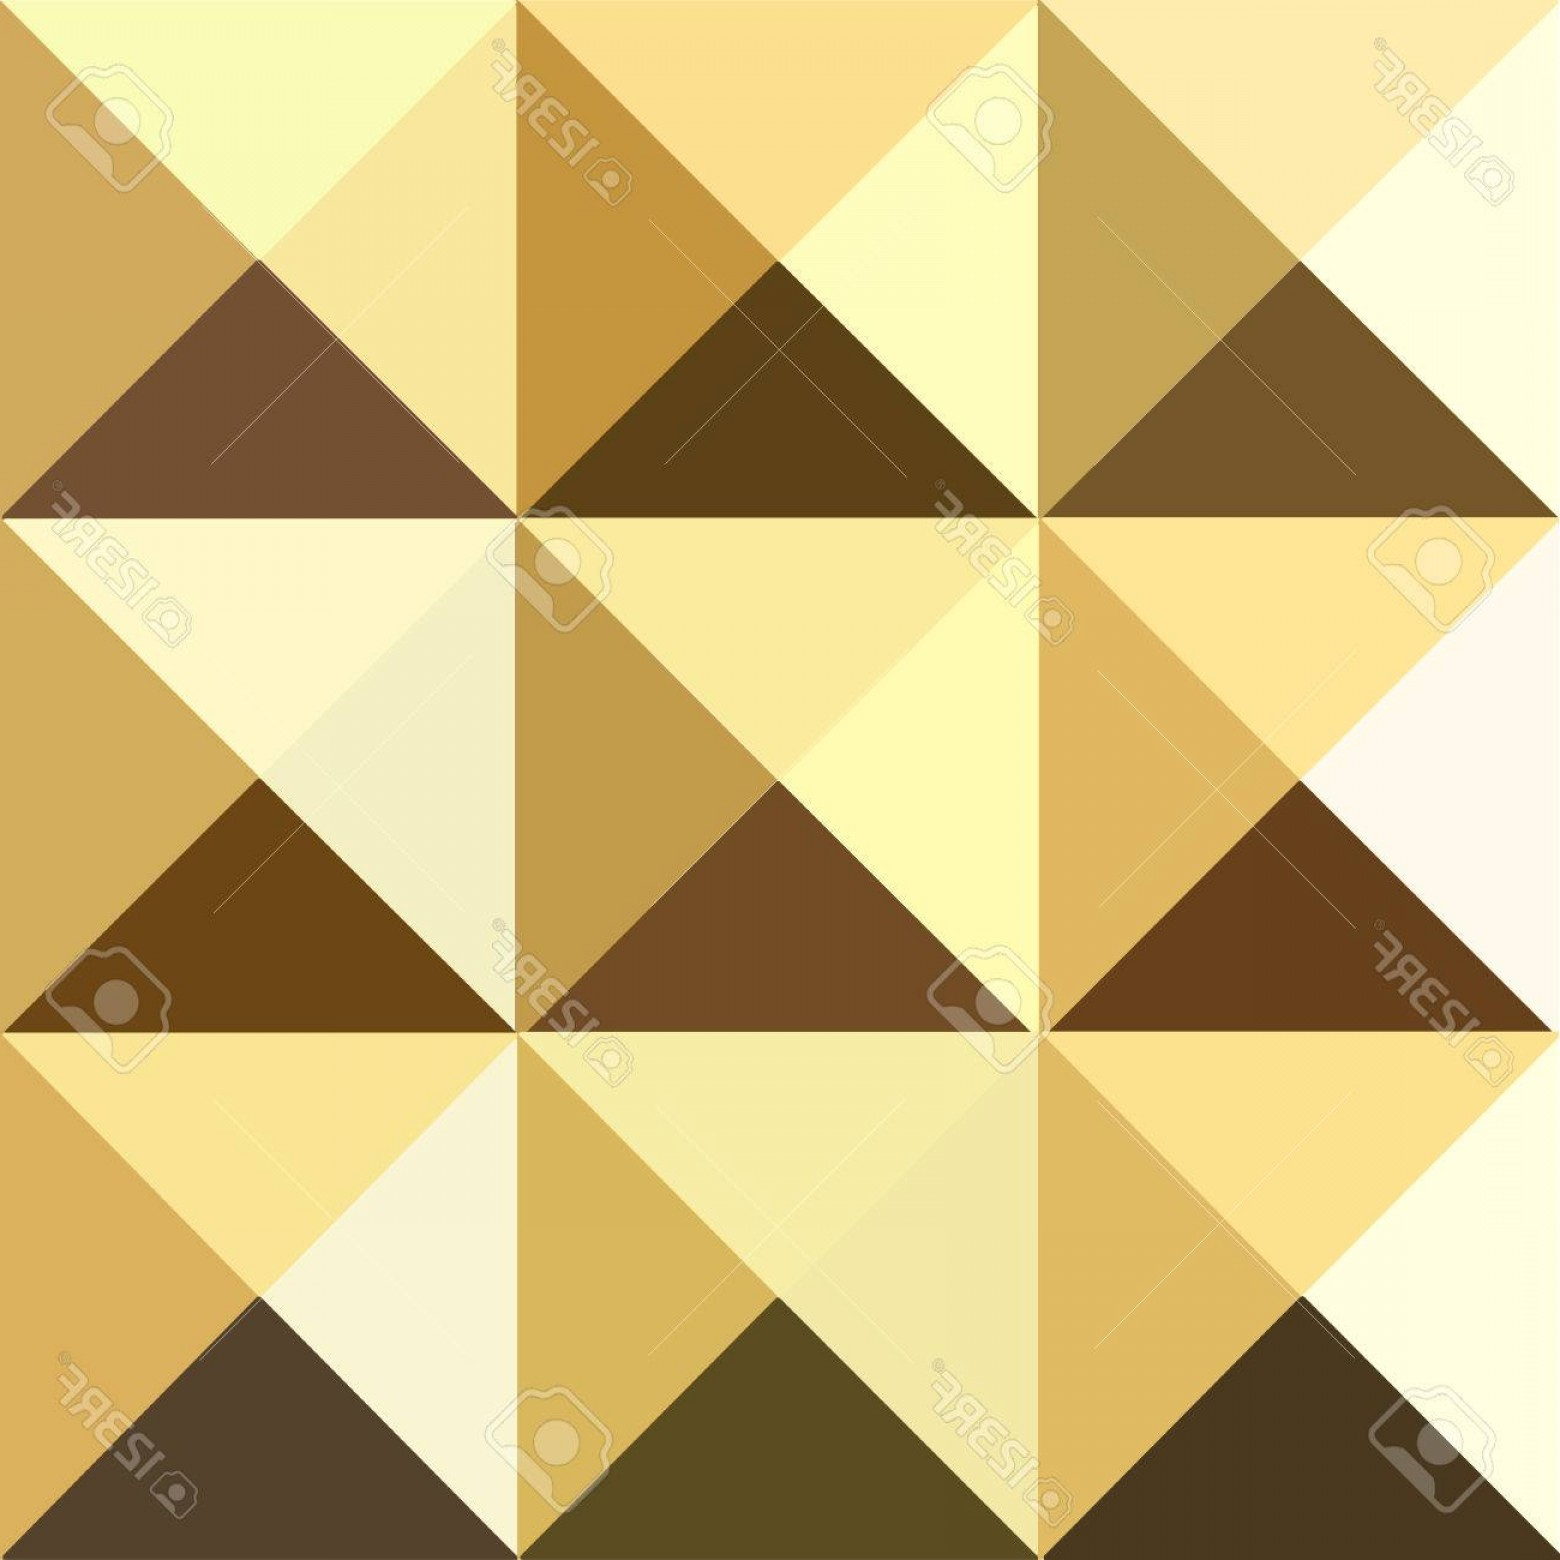 Pyramid Stud Vector: Photostock Vector Pyramid Seamless Pattern Polygon Colorful Golden Studs Background